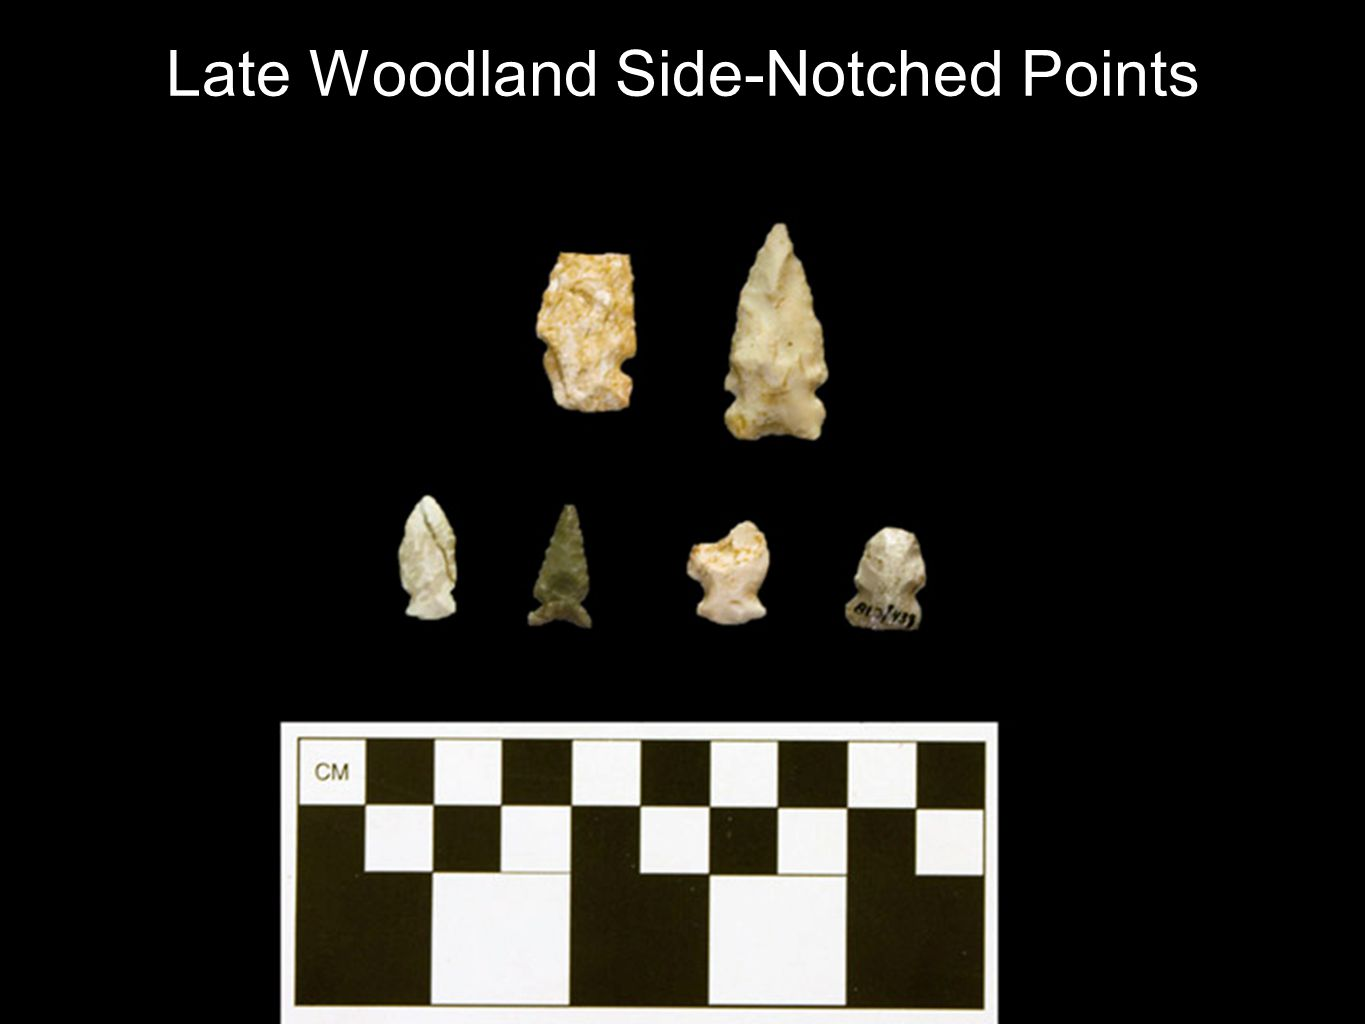 Late Woodland Side-Notched Points